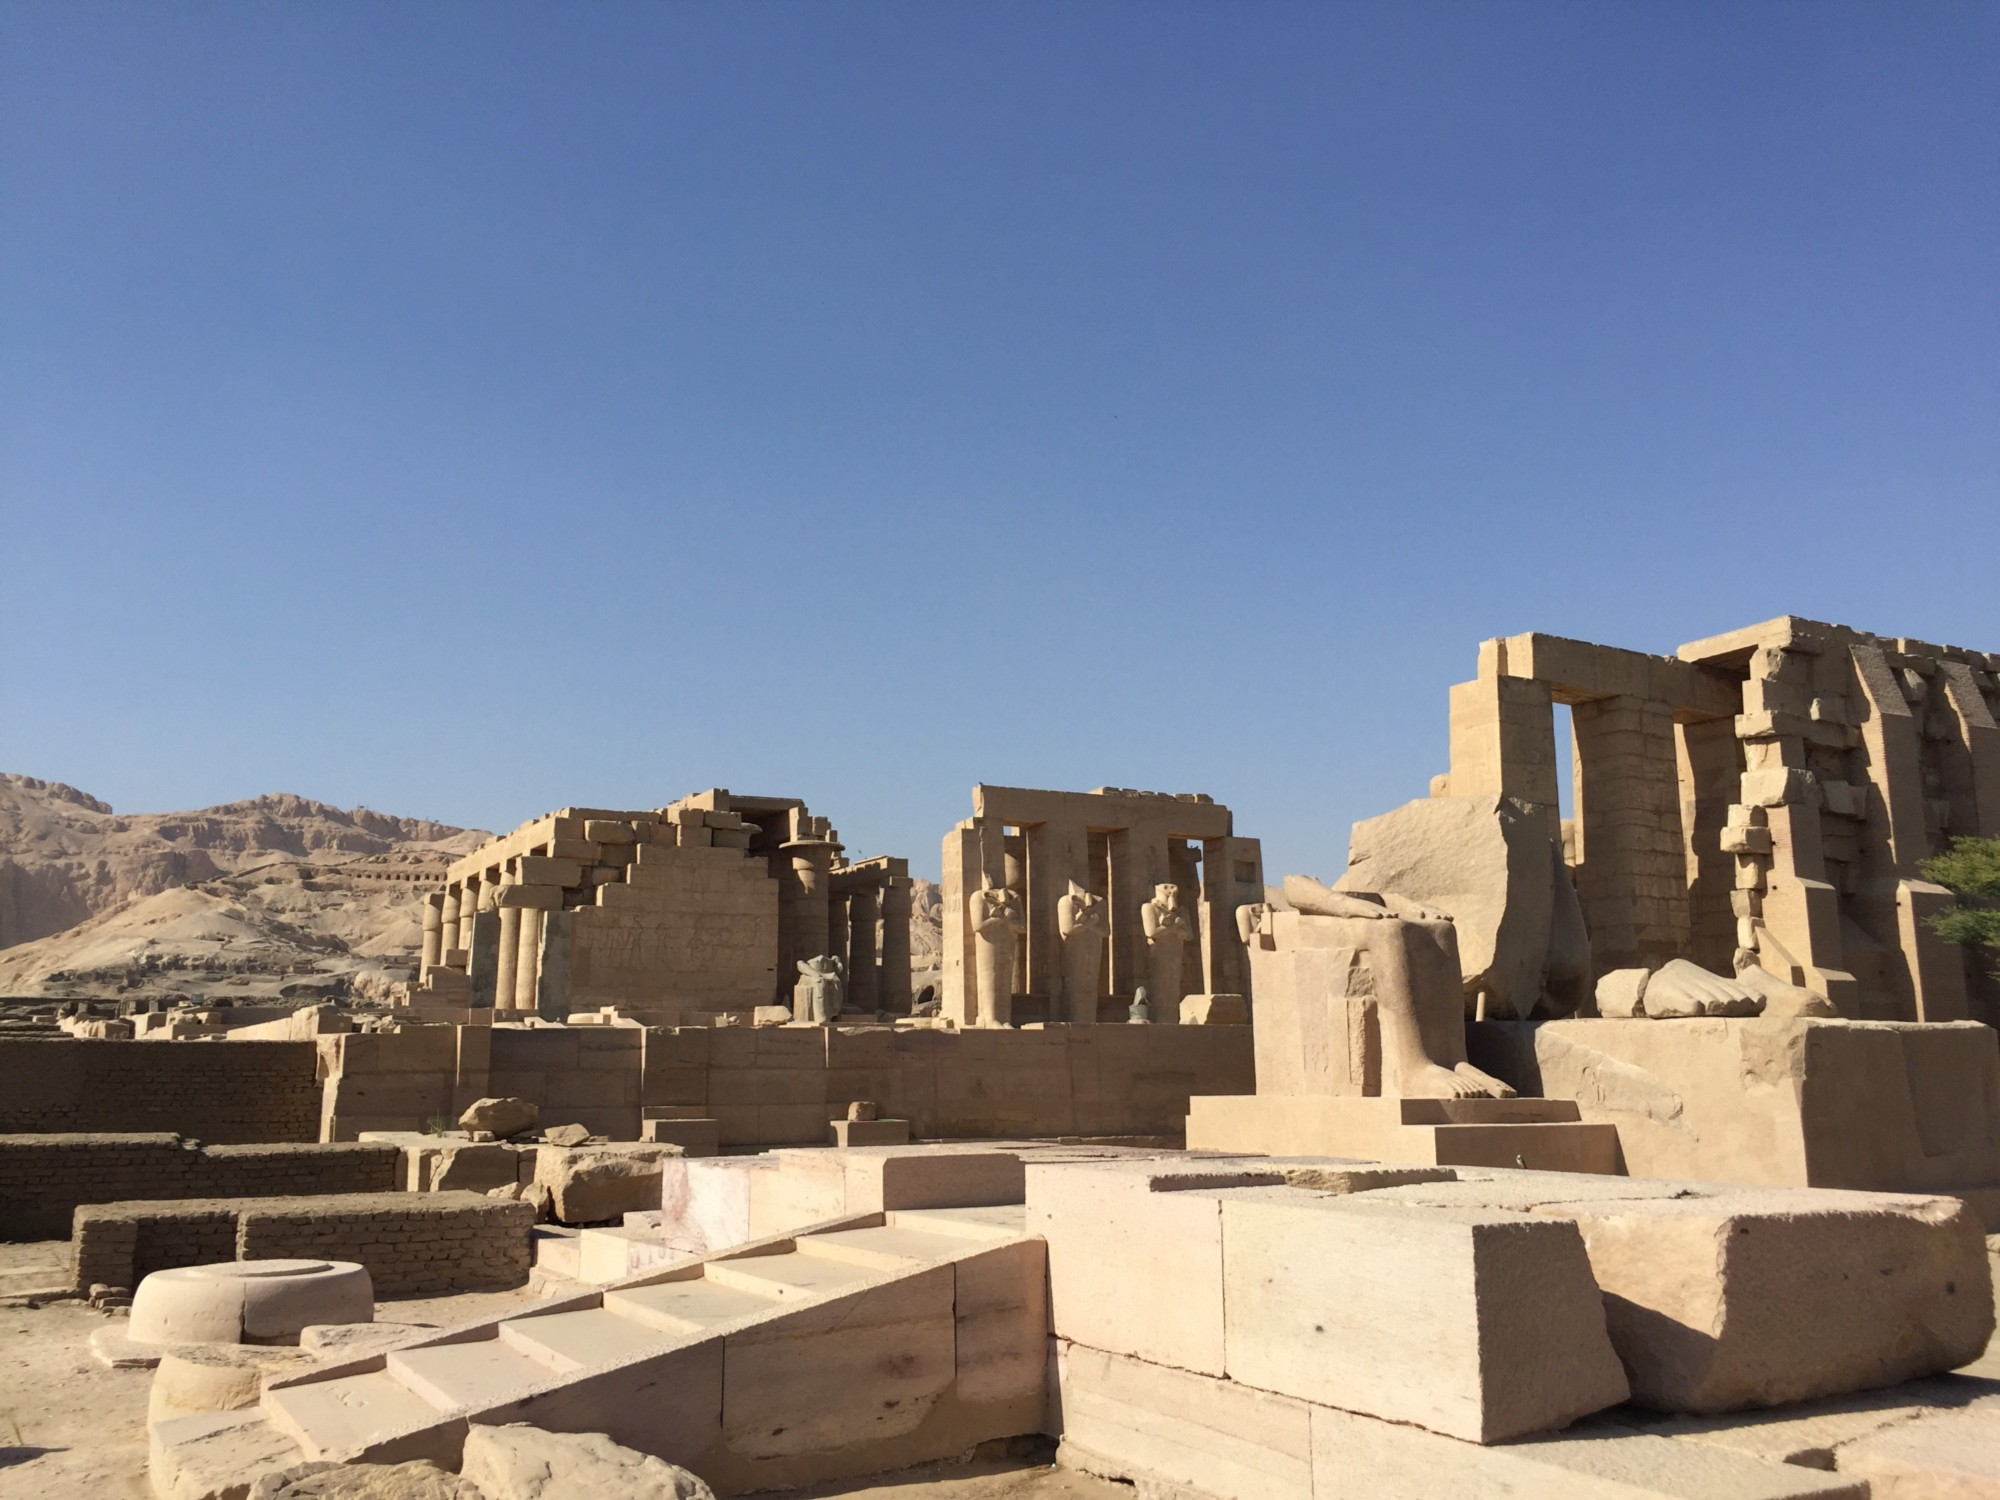 ANCIENT EGYPT: GENERATION COUNTRY – You Have a Lucky Face